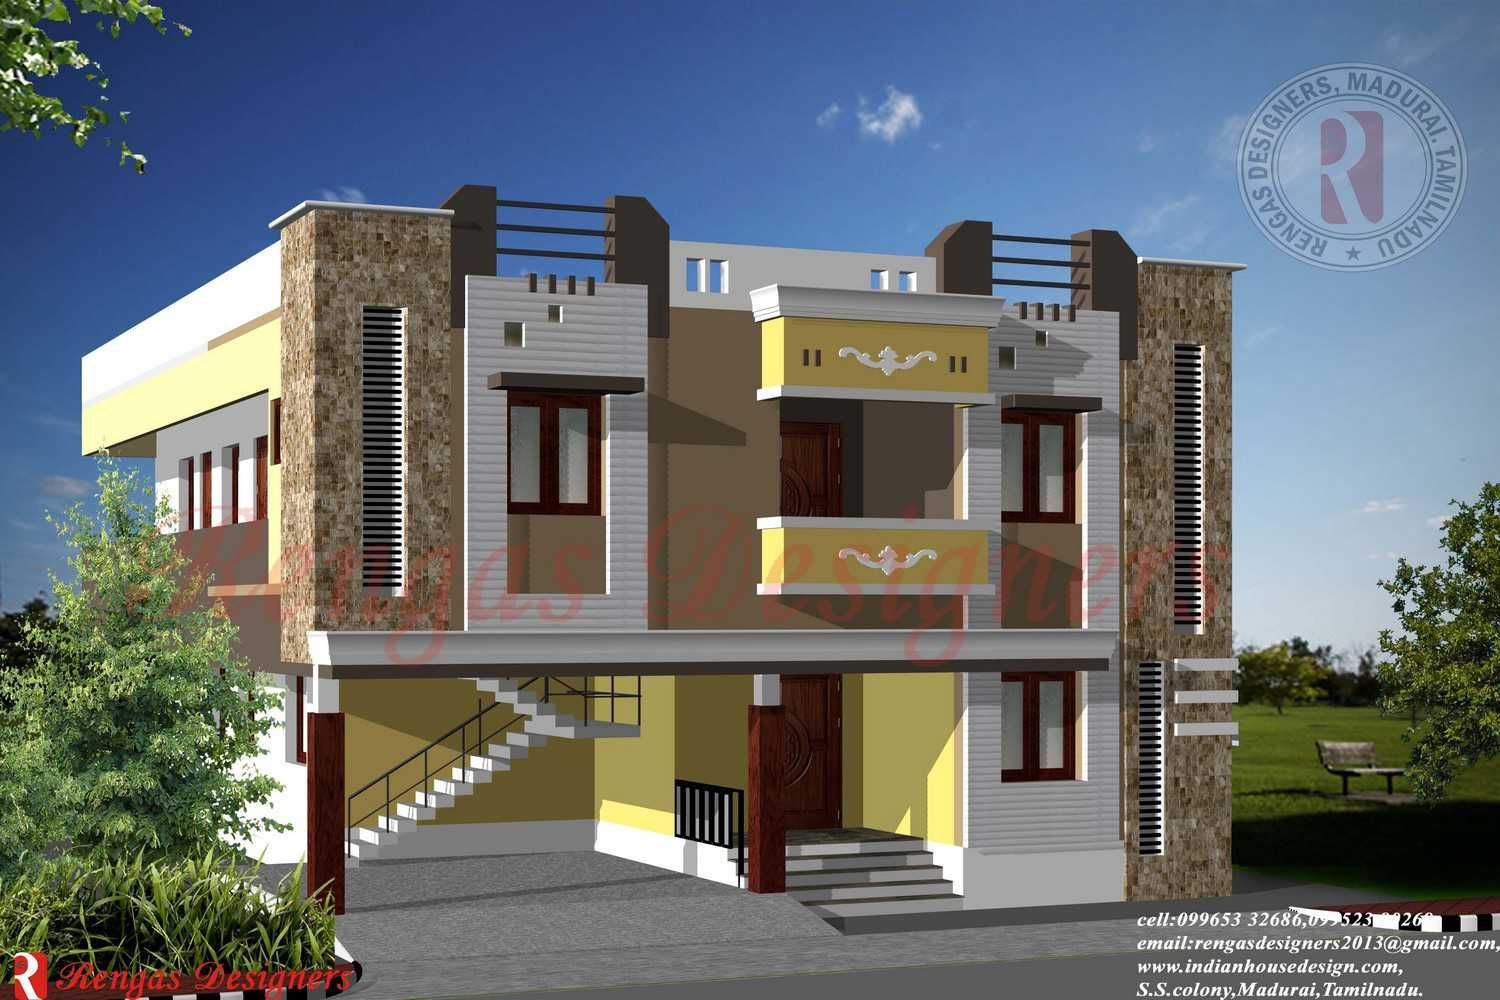 Parapet wall designs google search residence for Indian house photo gallery